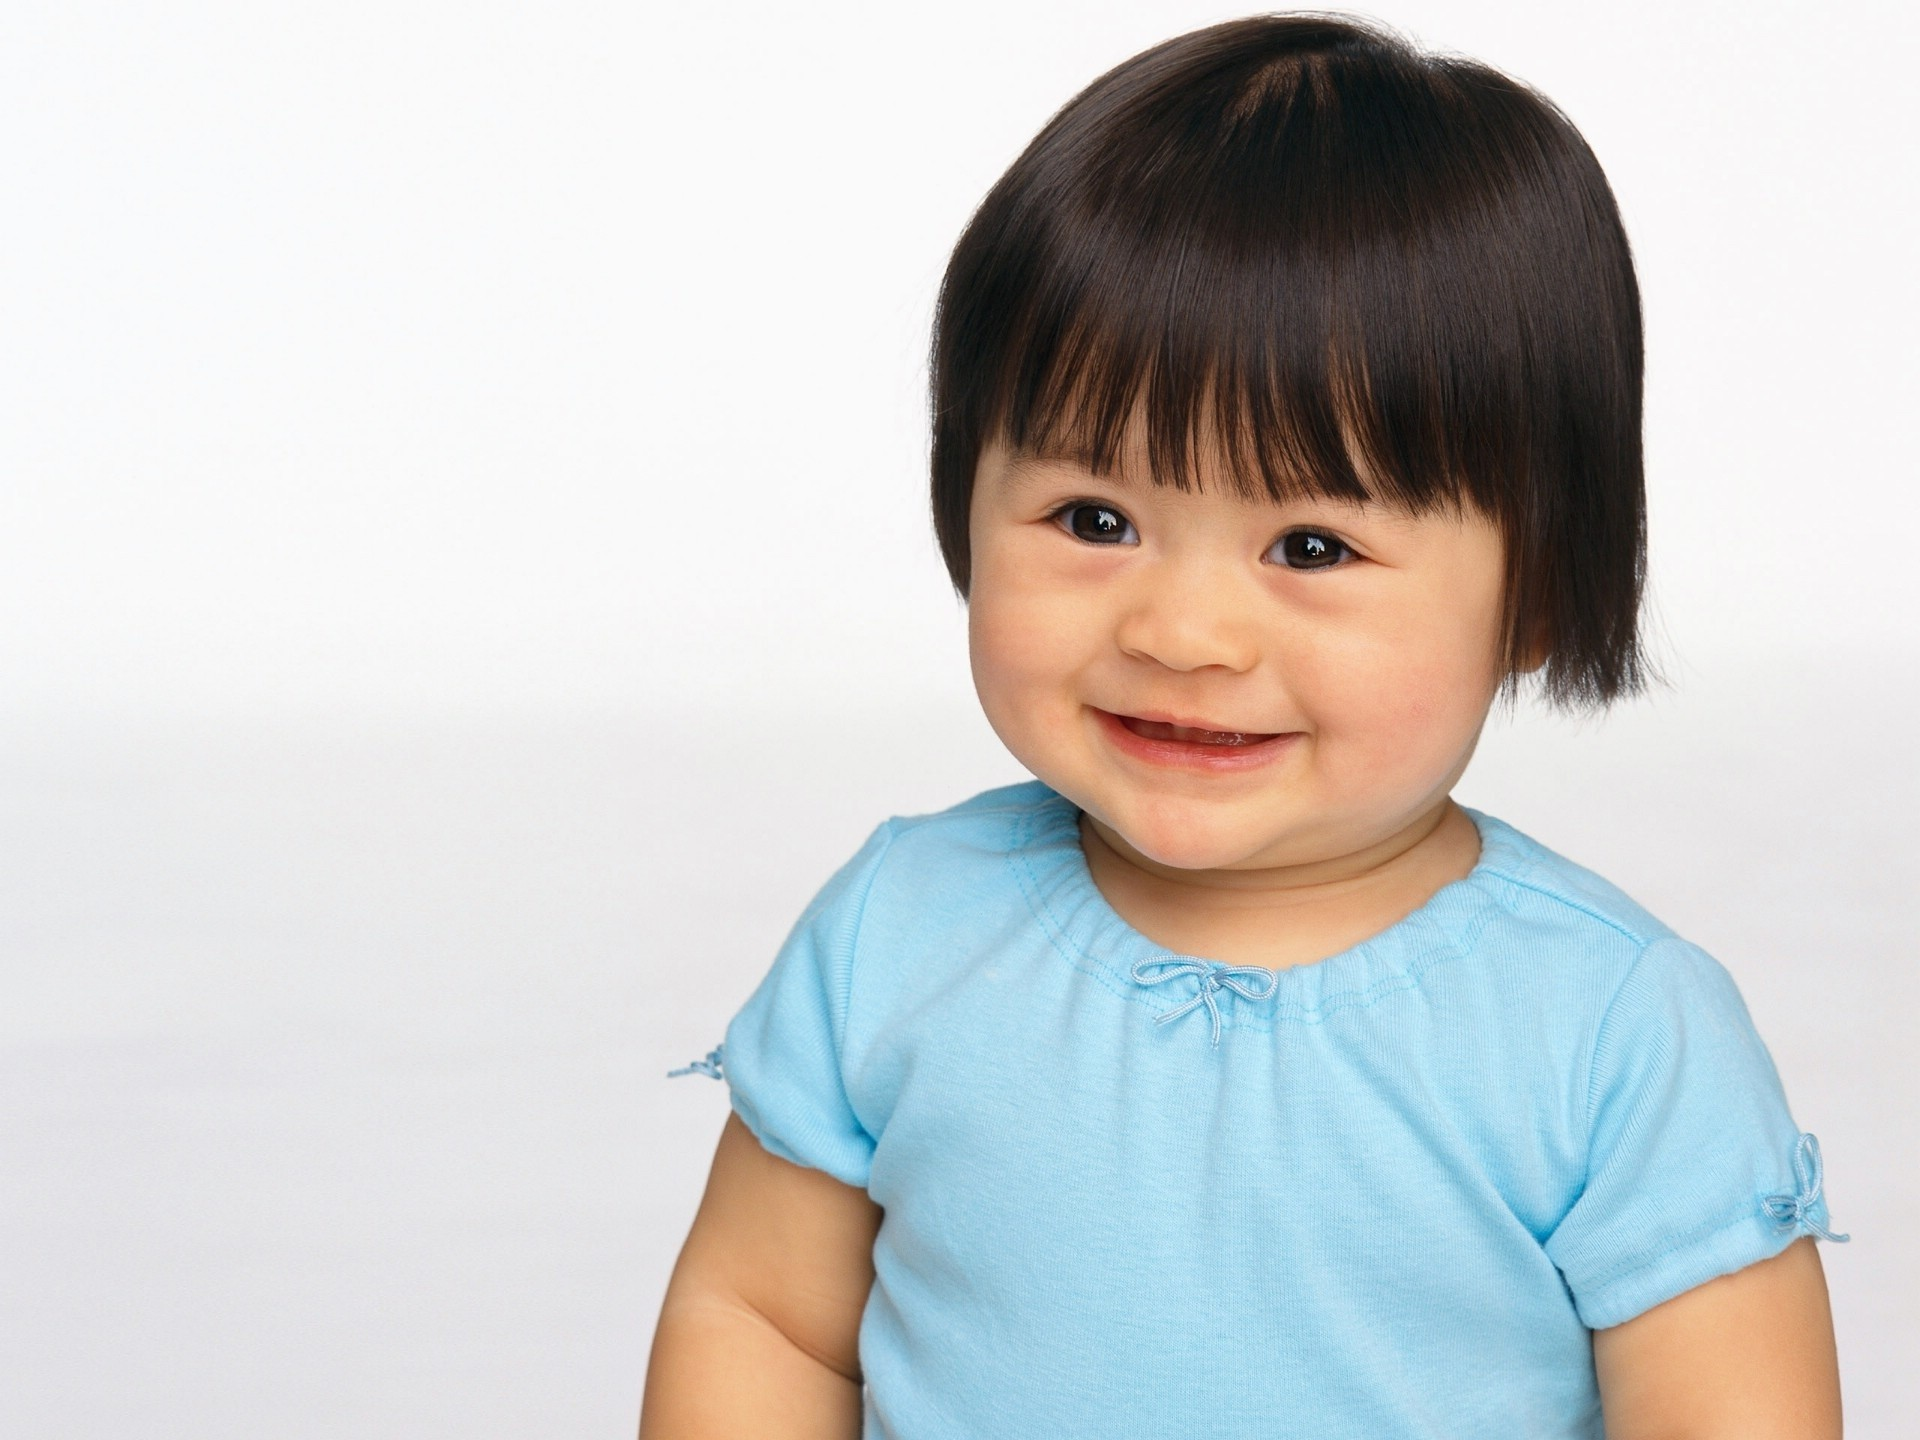 Find out: Cute Chubby Baby wallpaper on https://hdpicorner.com/